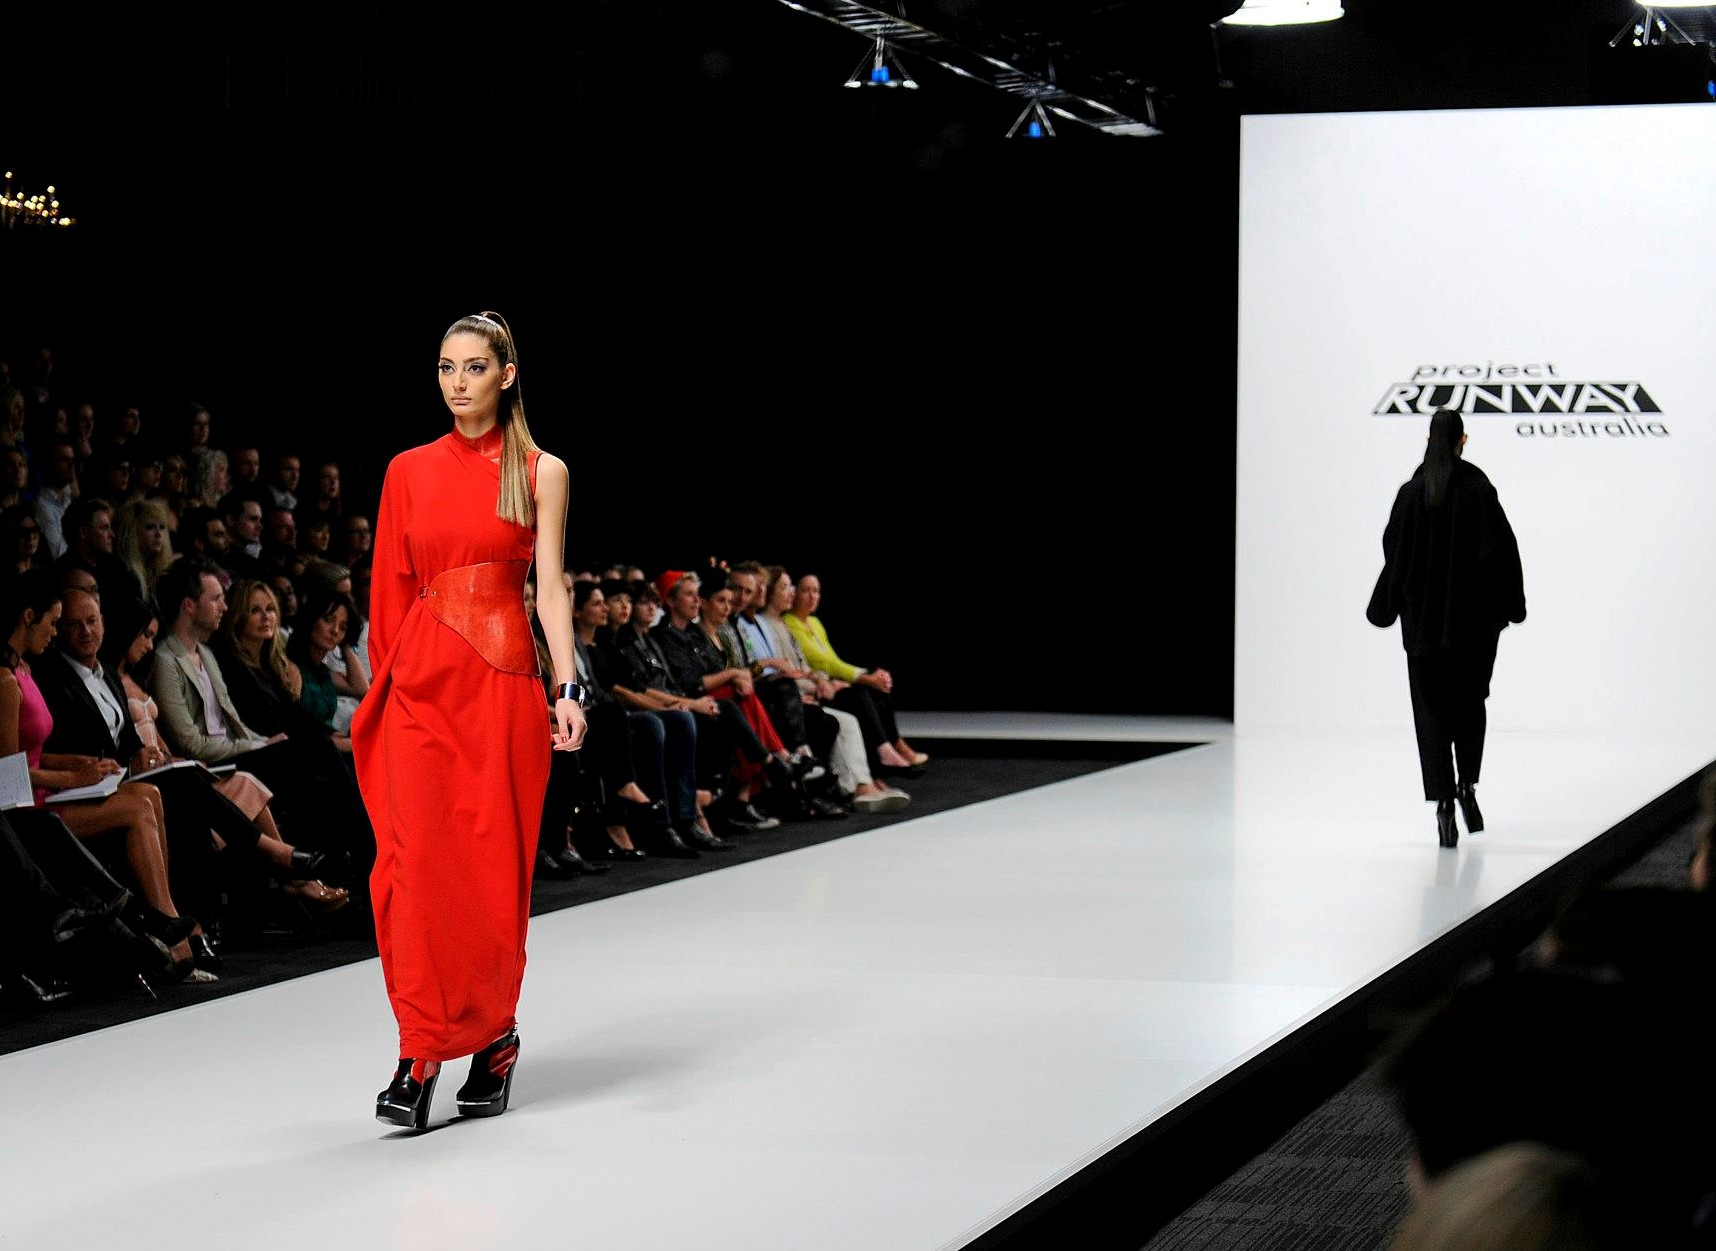 Leah-Johnsen-Project-Runway-Australia